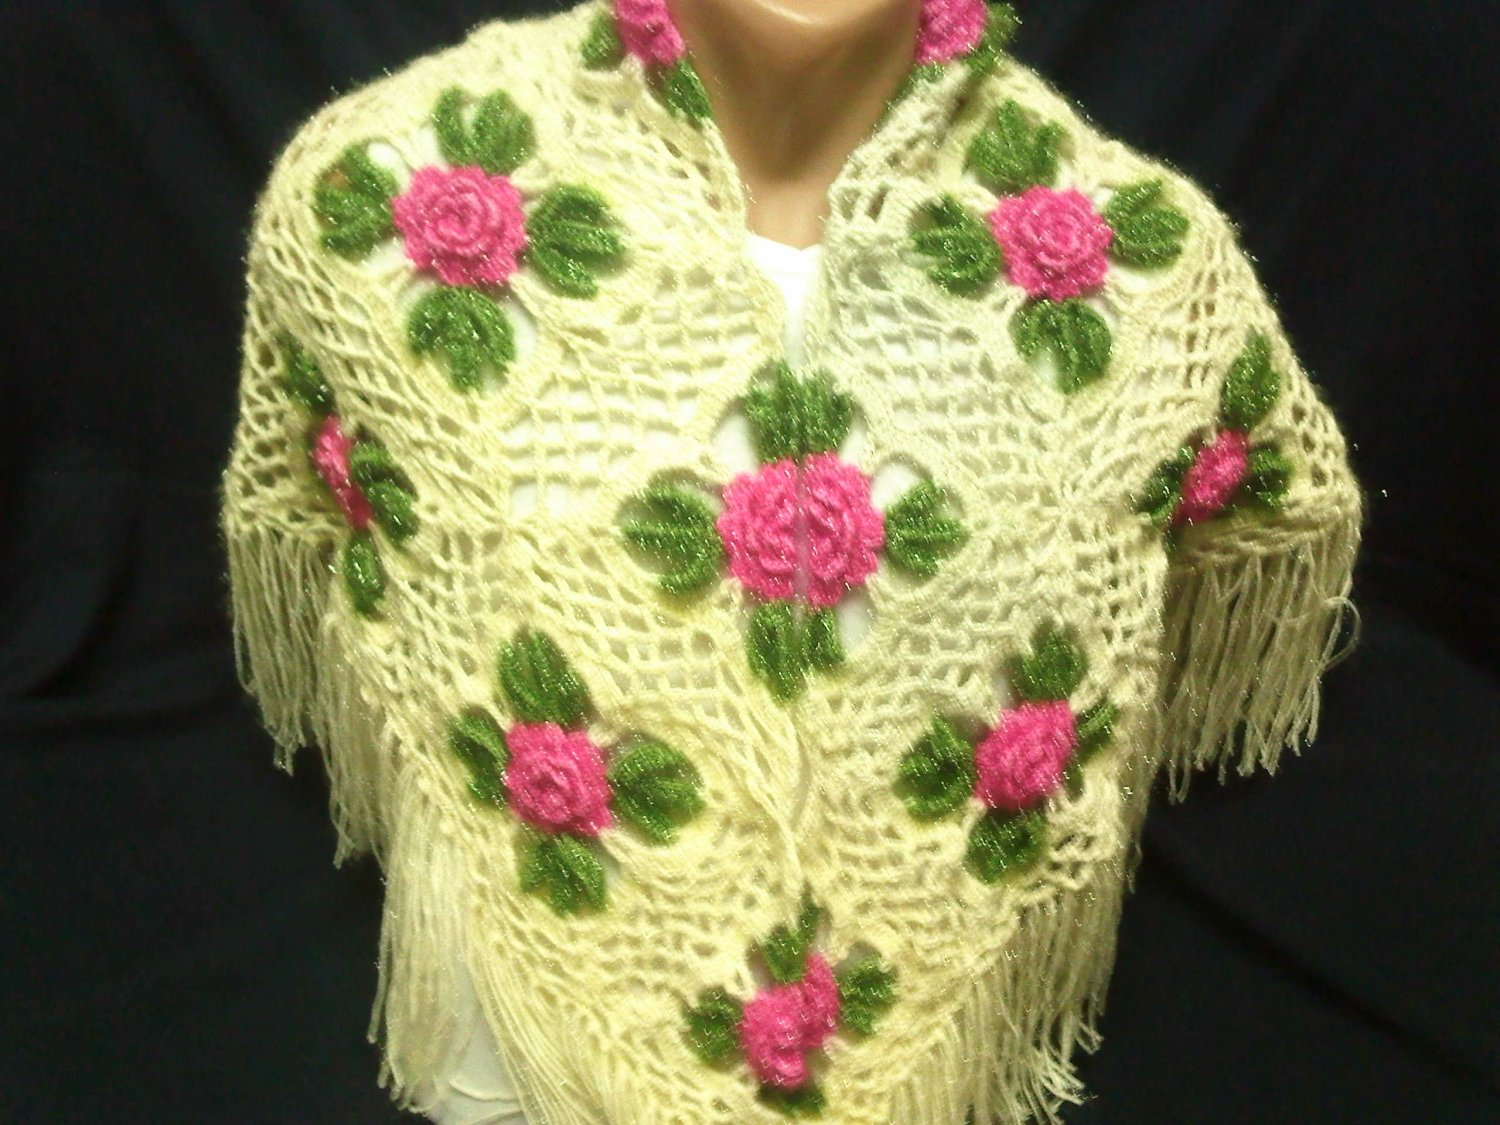 handmade beatiful shawl for wedding and party it is very pretty